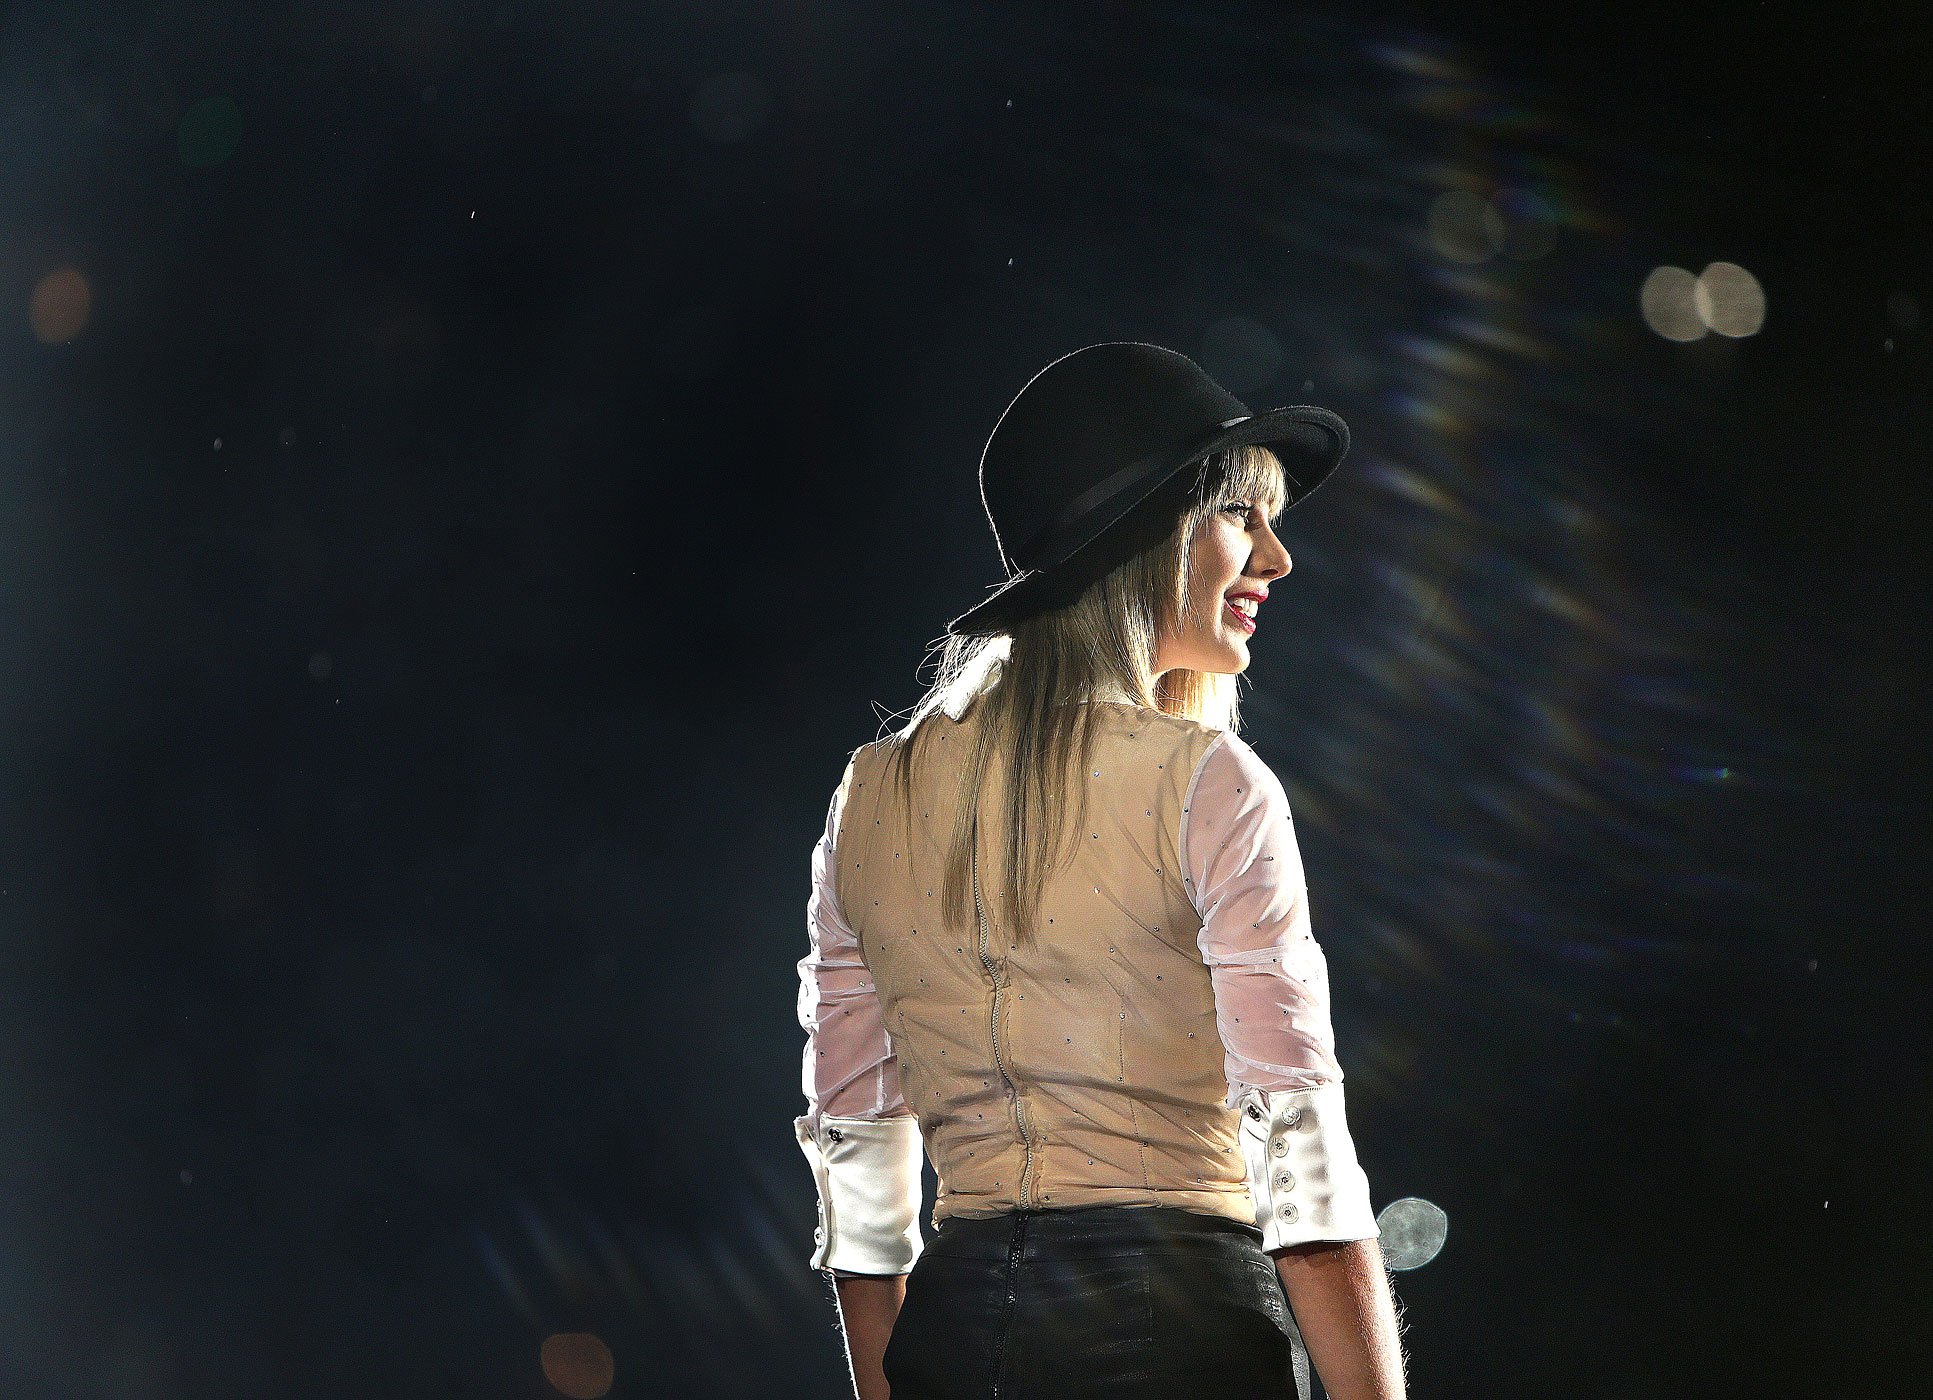 Taylor Swift in concert at Gillette Stadium in Foxborough, Massachusetts in 2013.